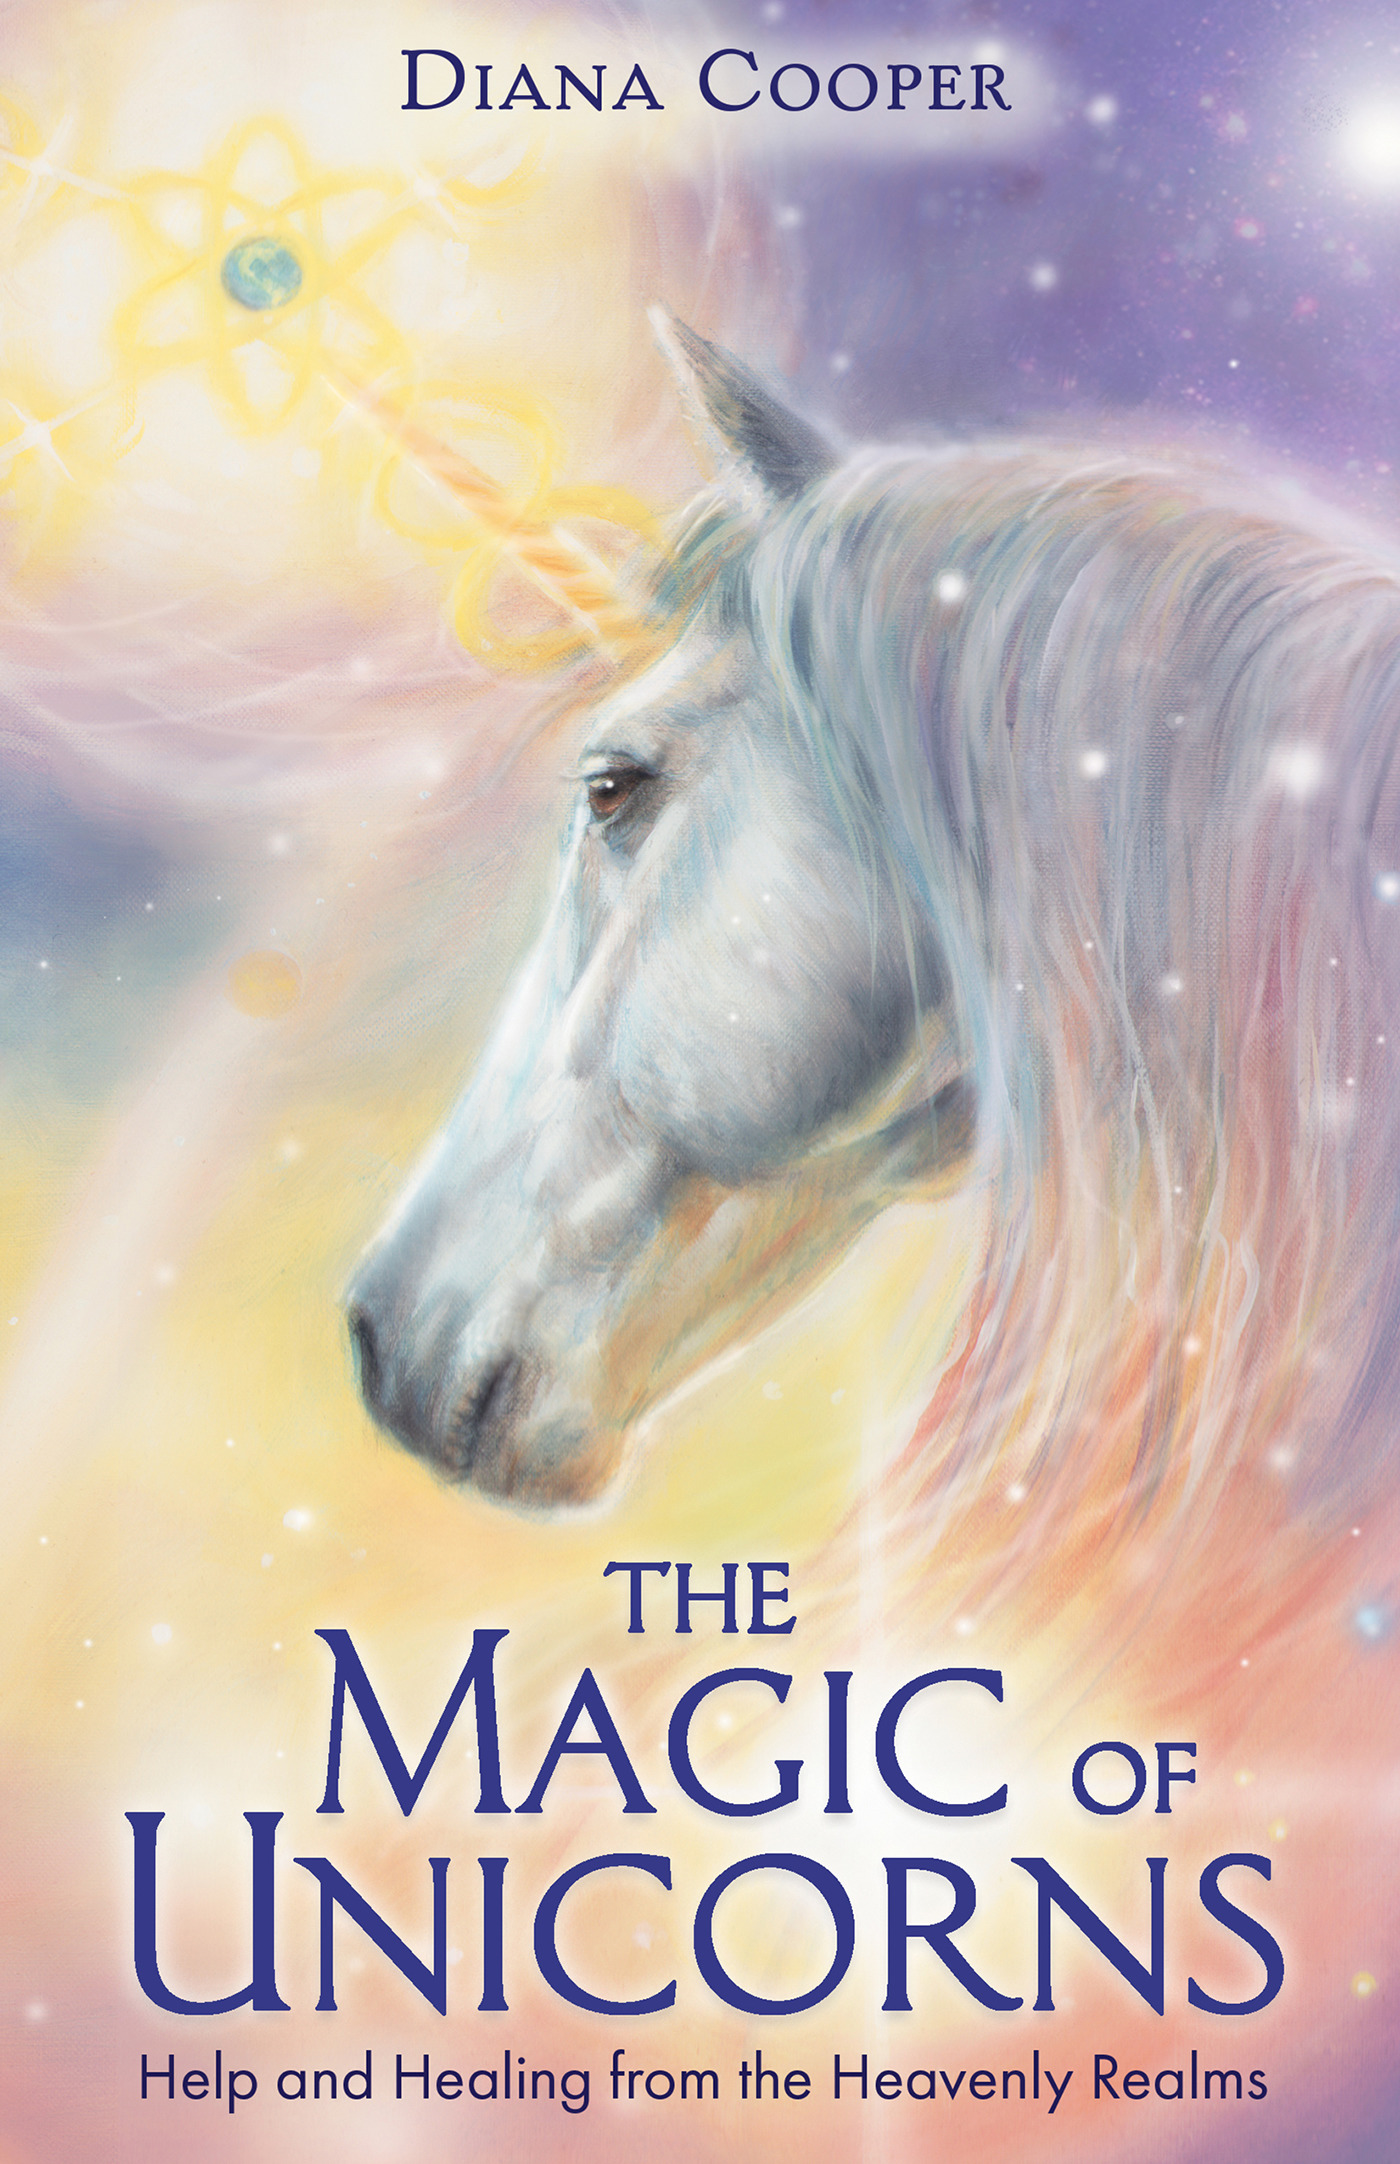 The Magic of Unicorns